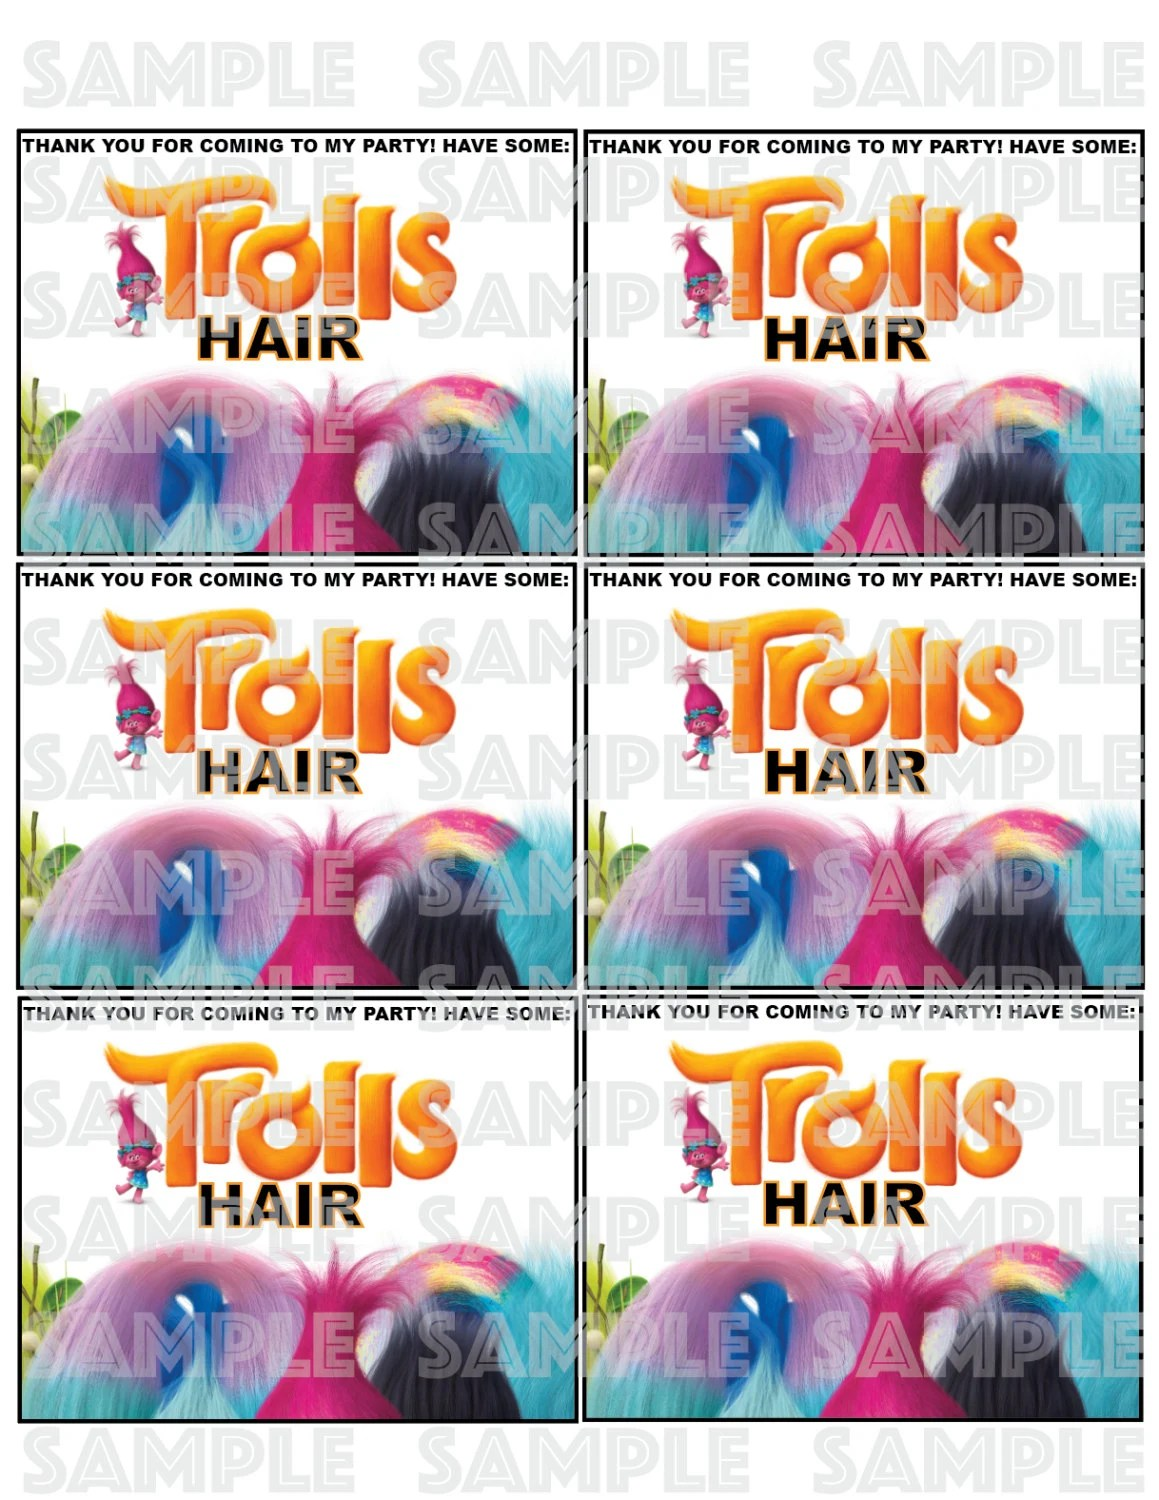 Trolls Cotton Candy Label Trolls Hair Trolls Favor Labels